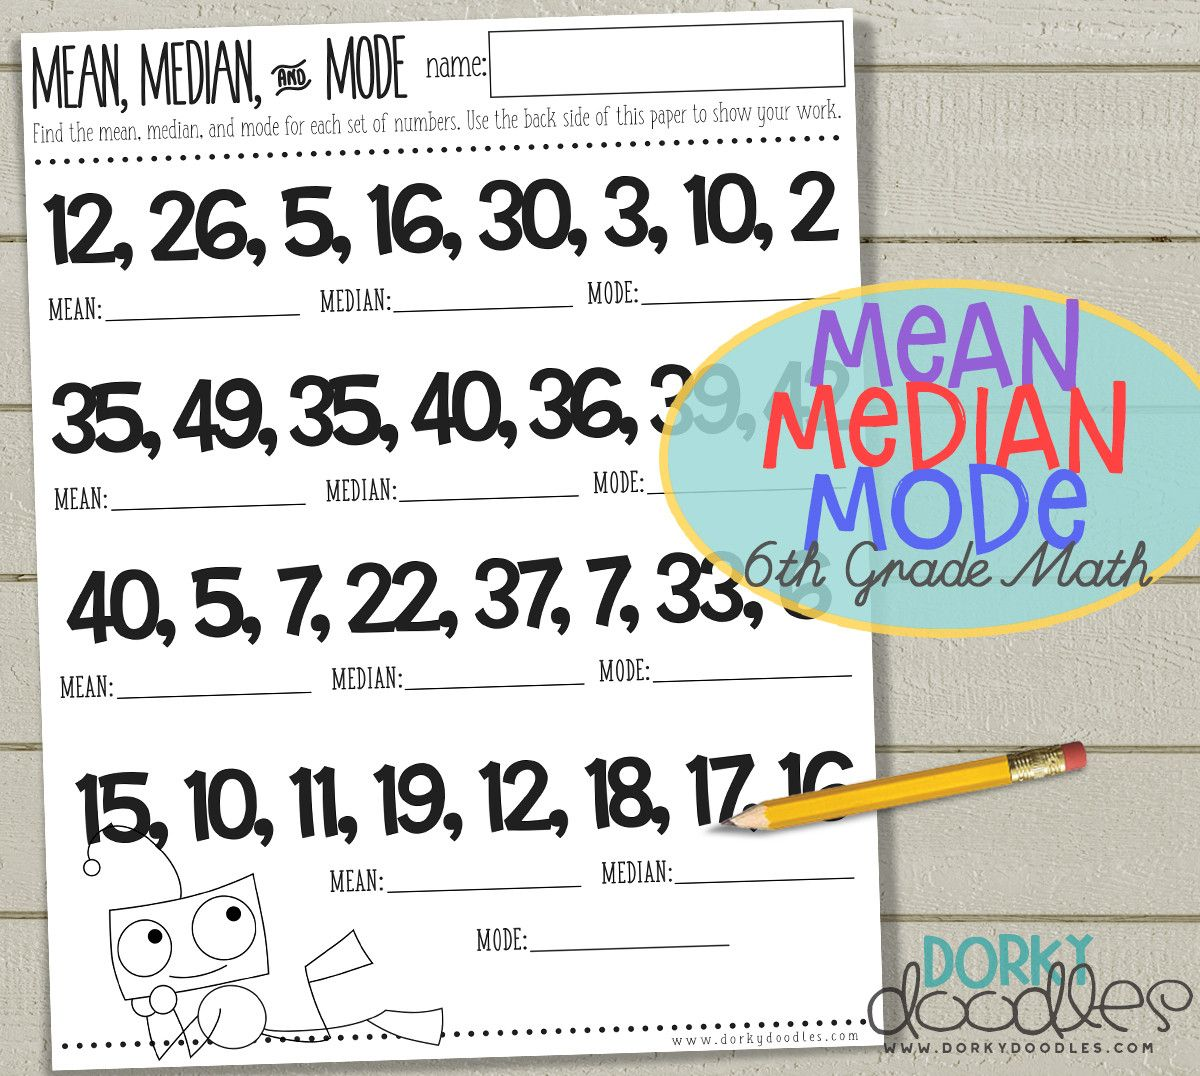 Mean median mode printable 6th grade math worksheet mean median mode printable 6th grade math worksheet ccuart Gallery